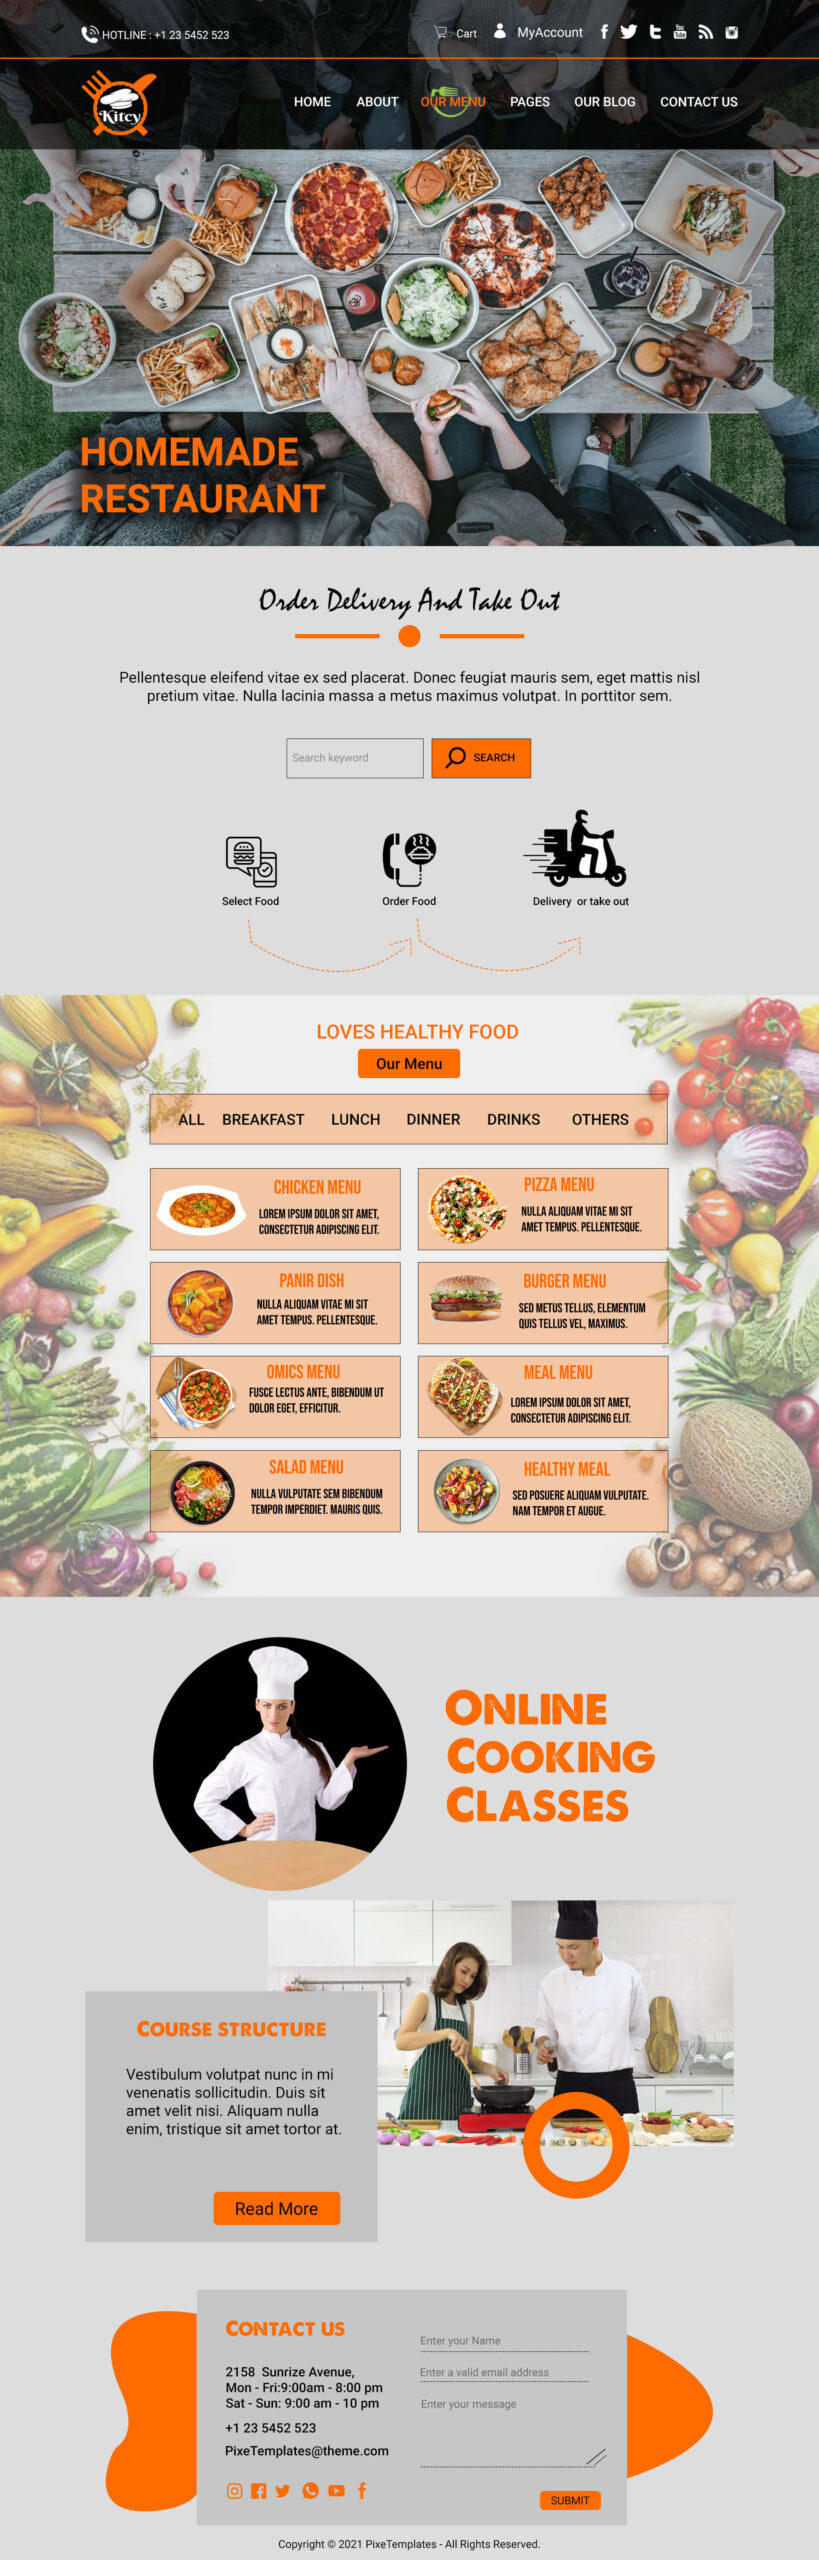 Free Website Template in PSD Source for Restaurants